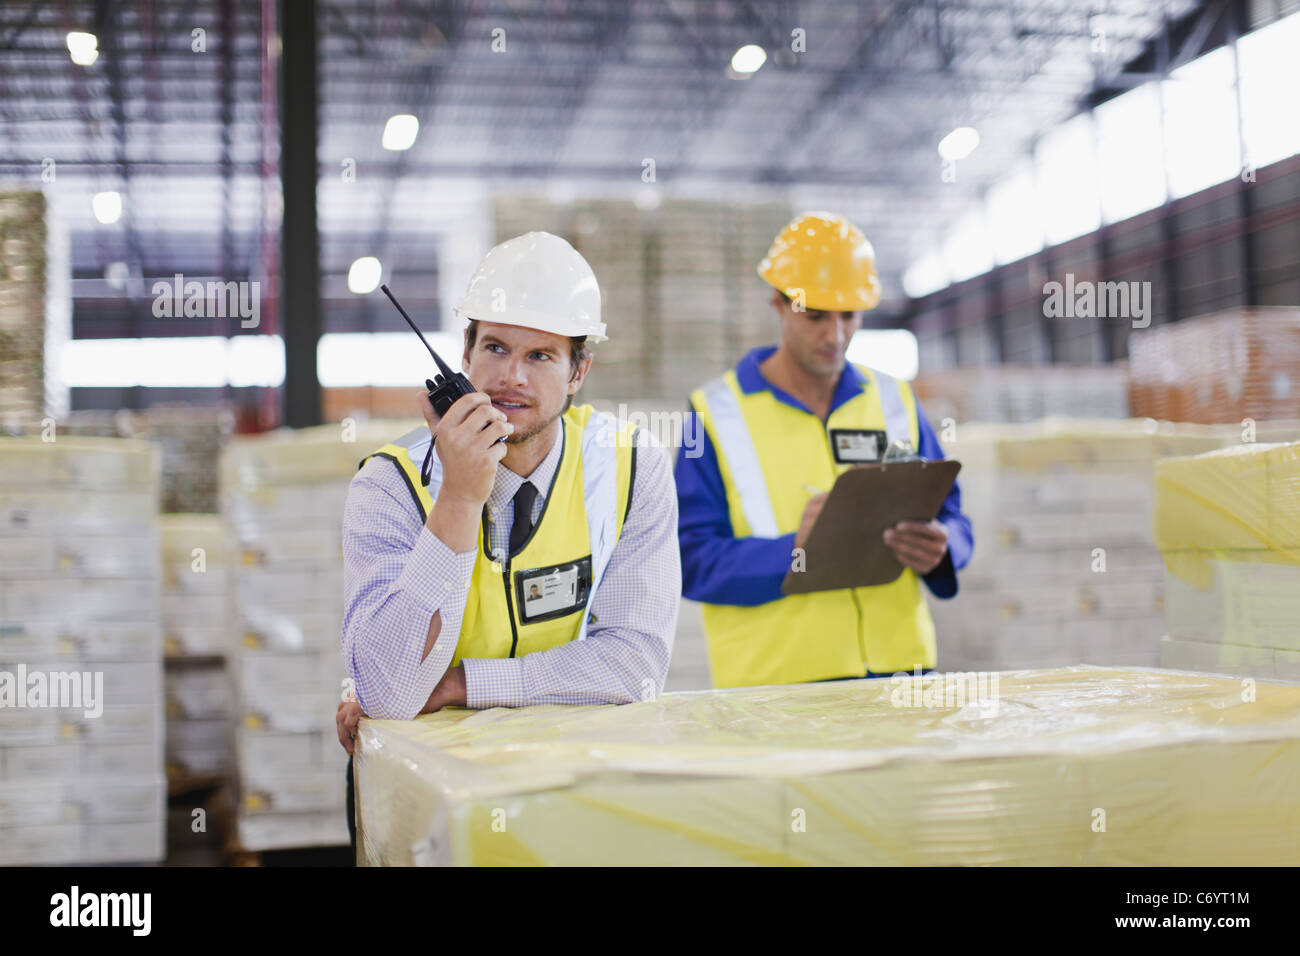 Worker using walkie talkie in warehouse - Stock Image